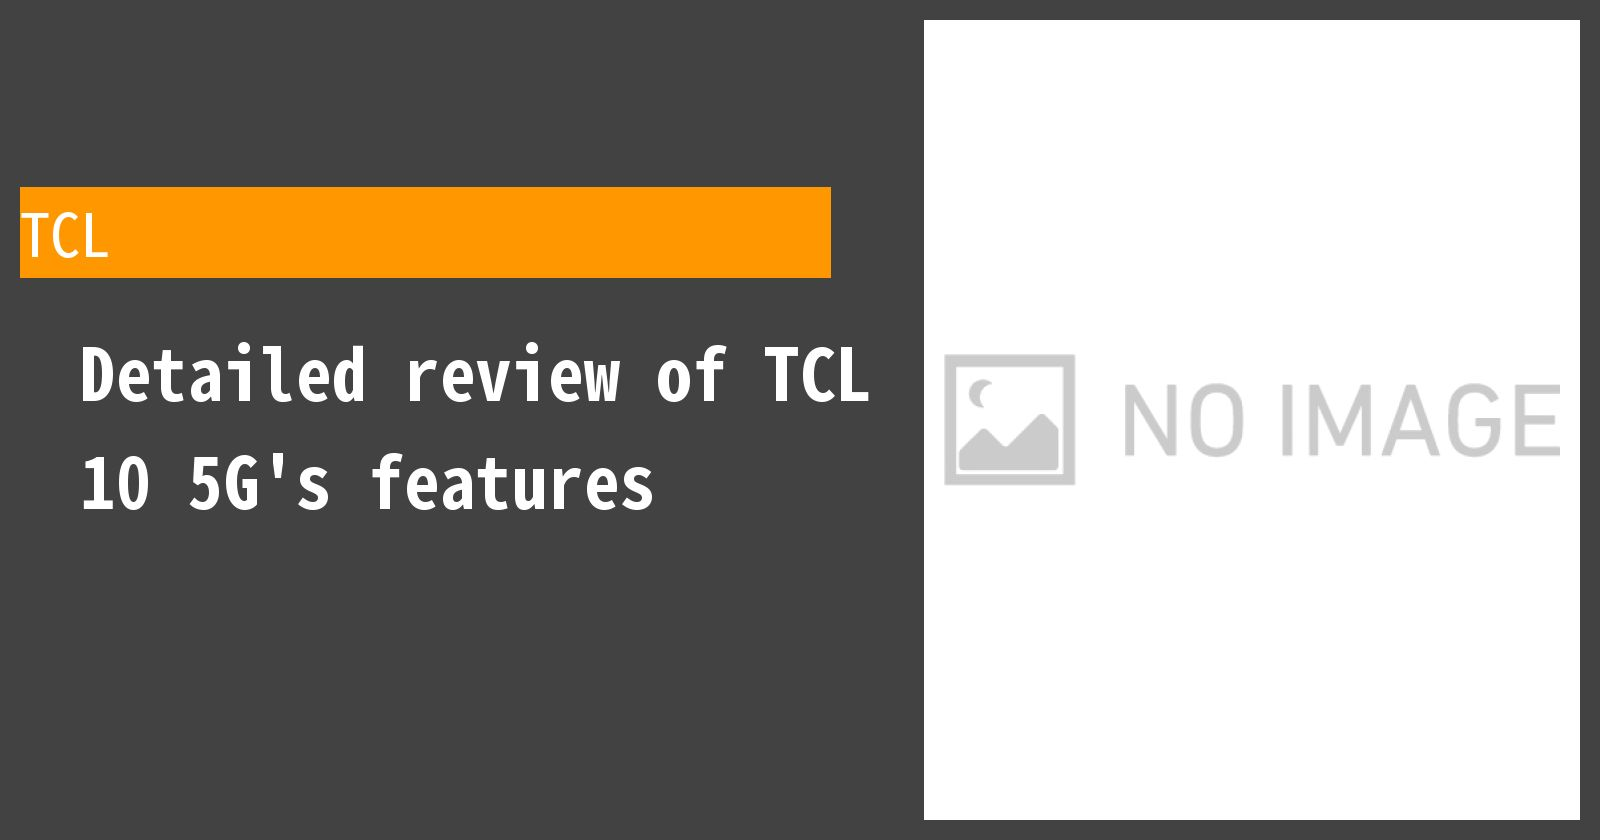 Detailed review of TCL 10 5G's features